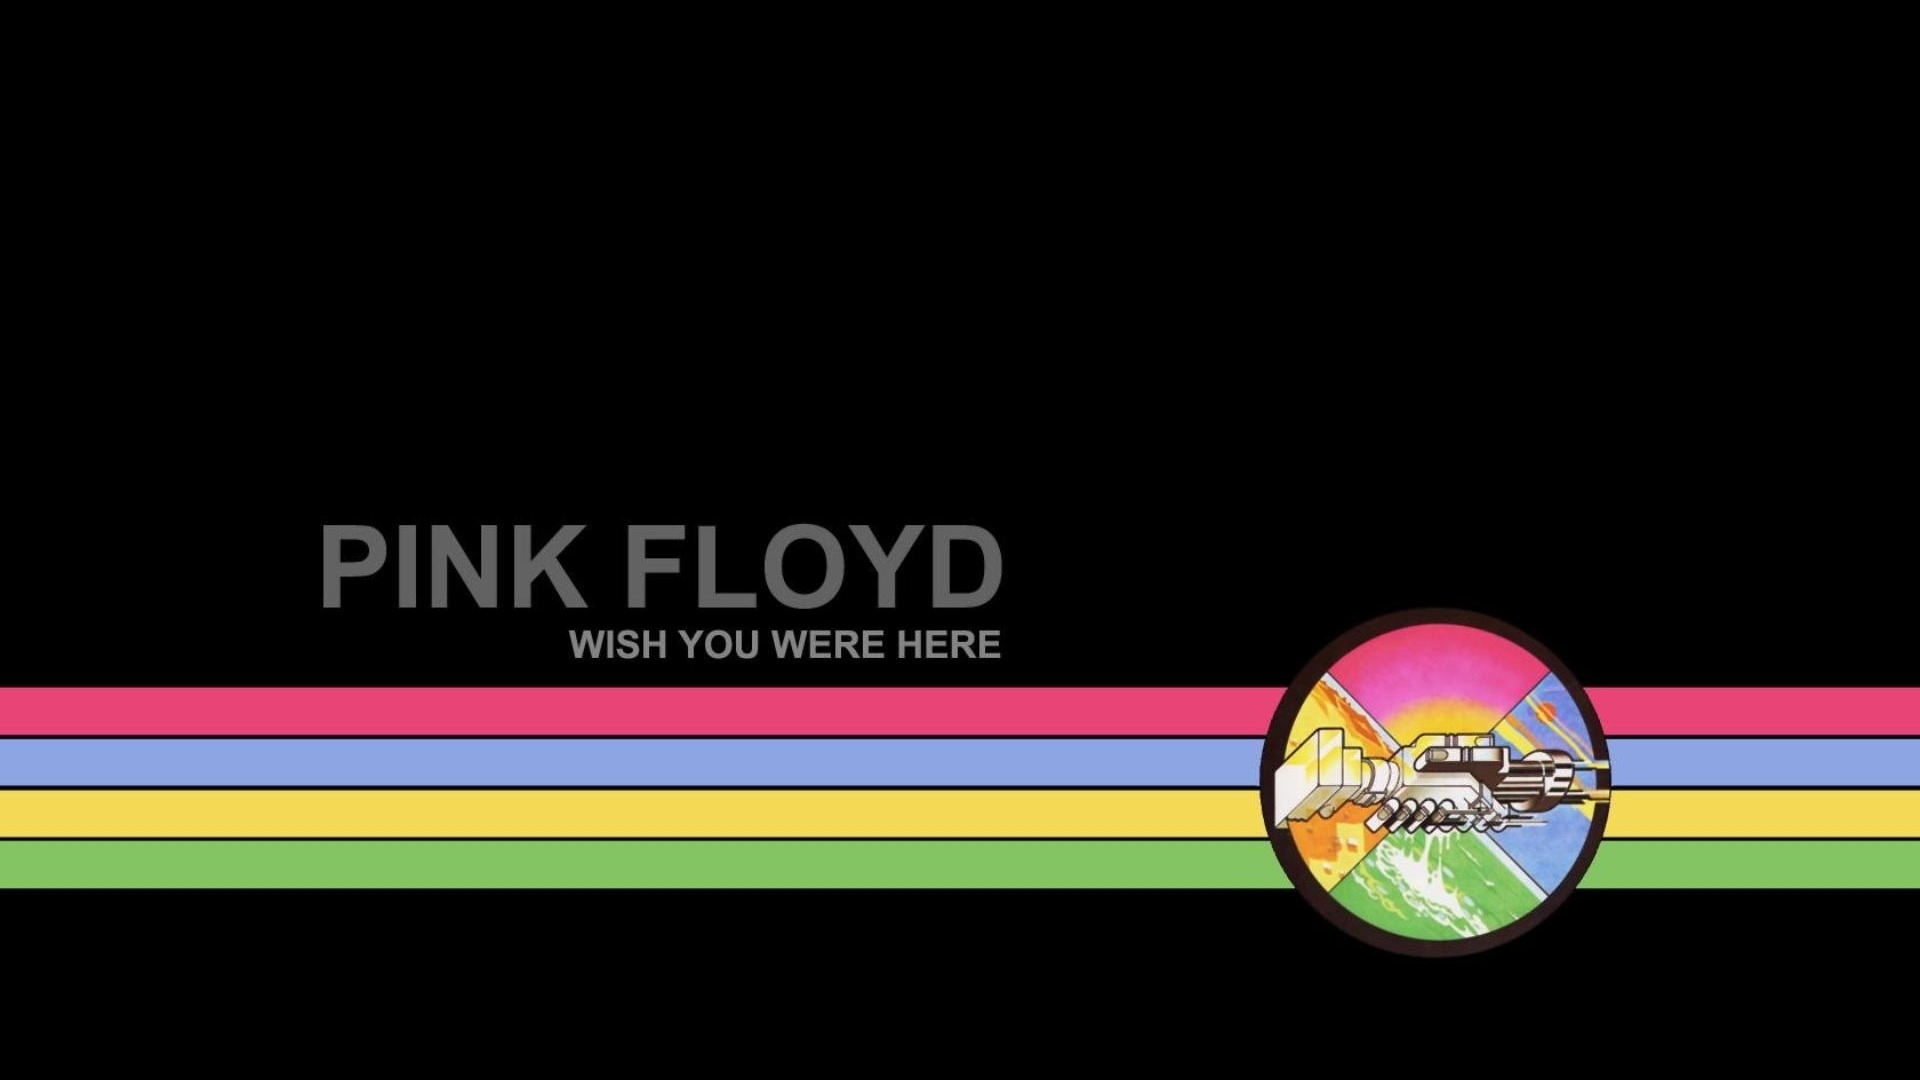 Wallpaper HD Pink Floyd